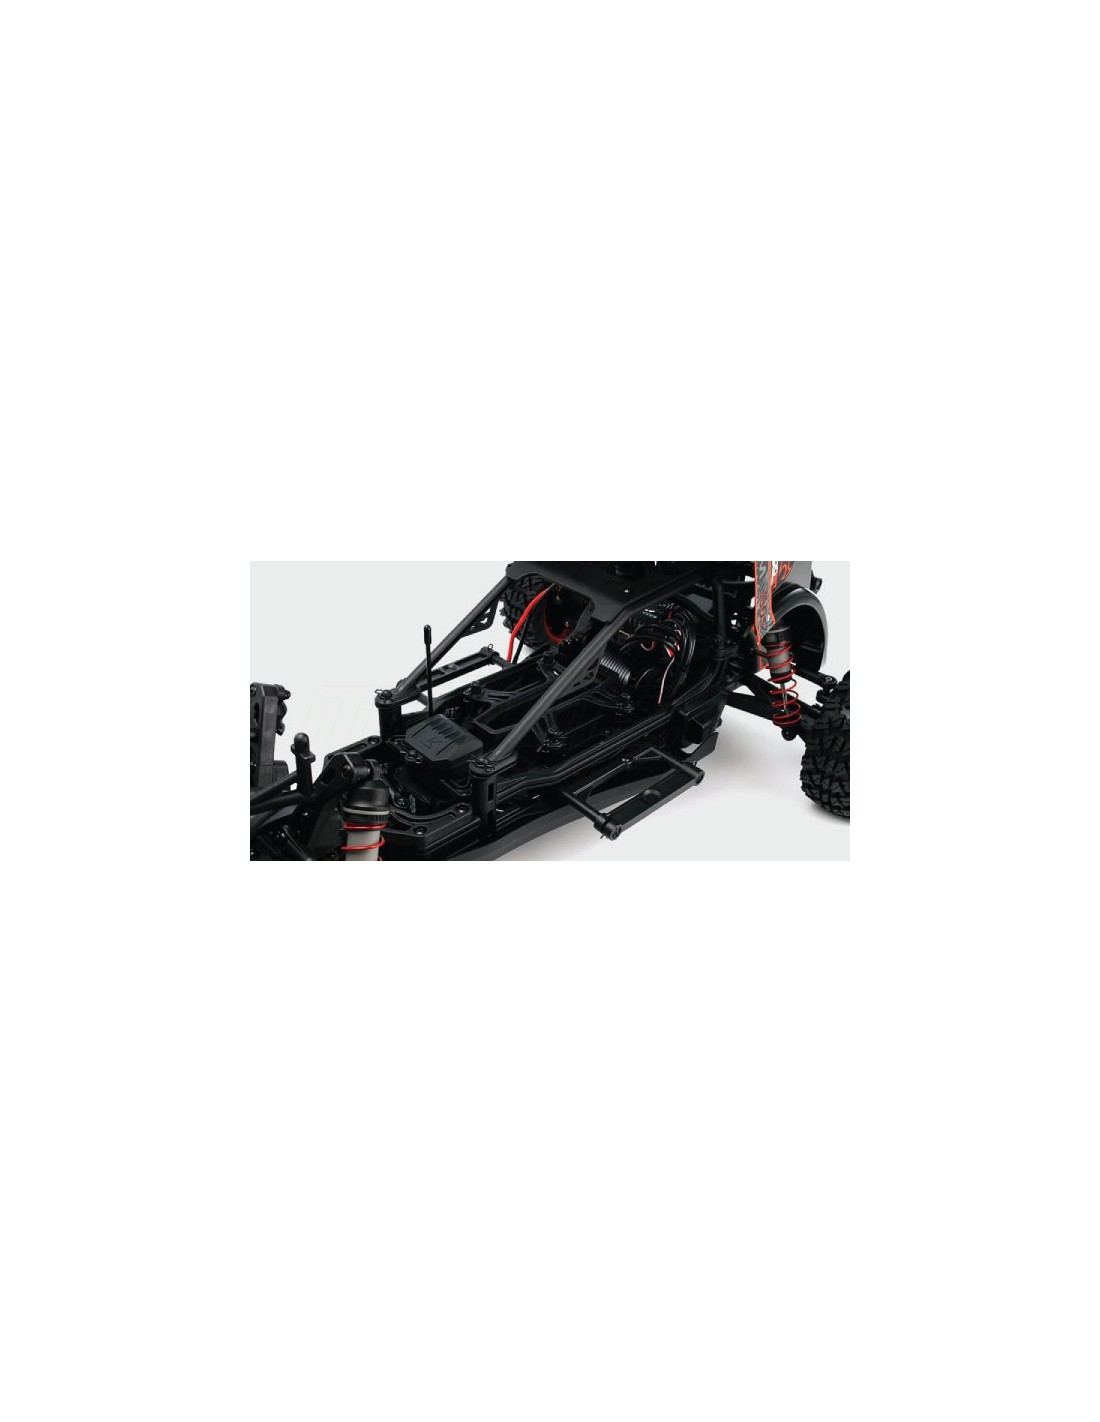 Kyosho Scorpion B-XXL Electric 2WD Buggy - ARTR